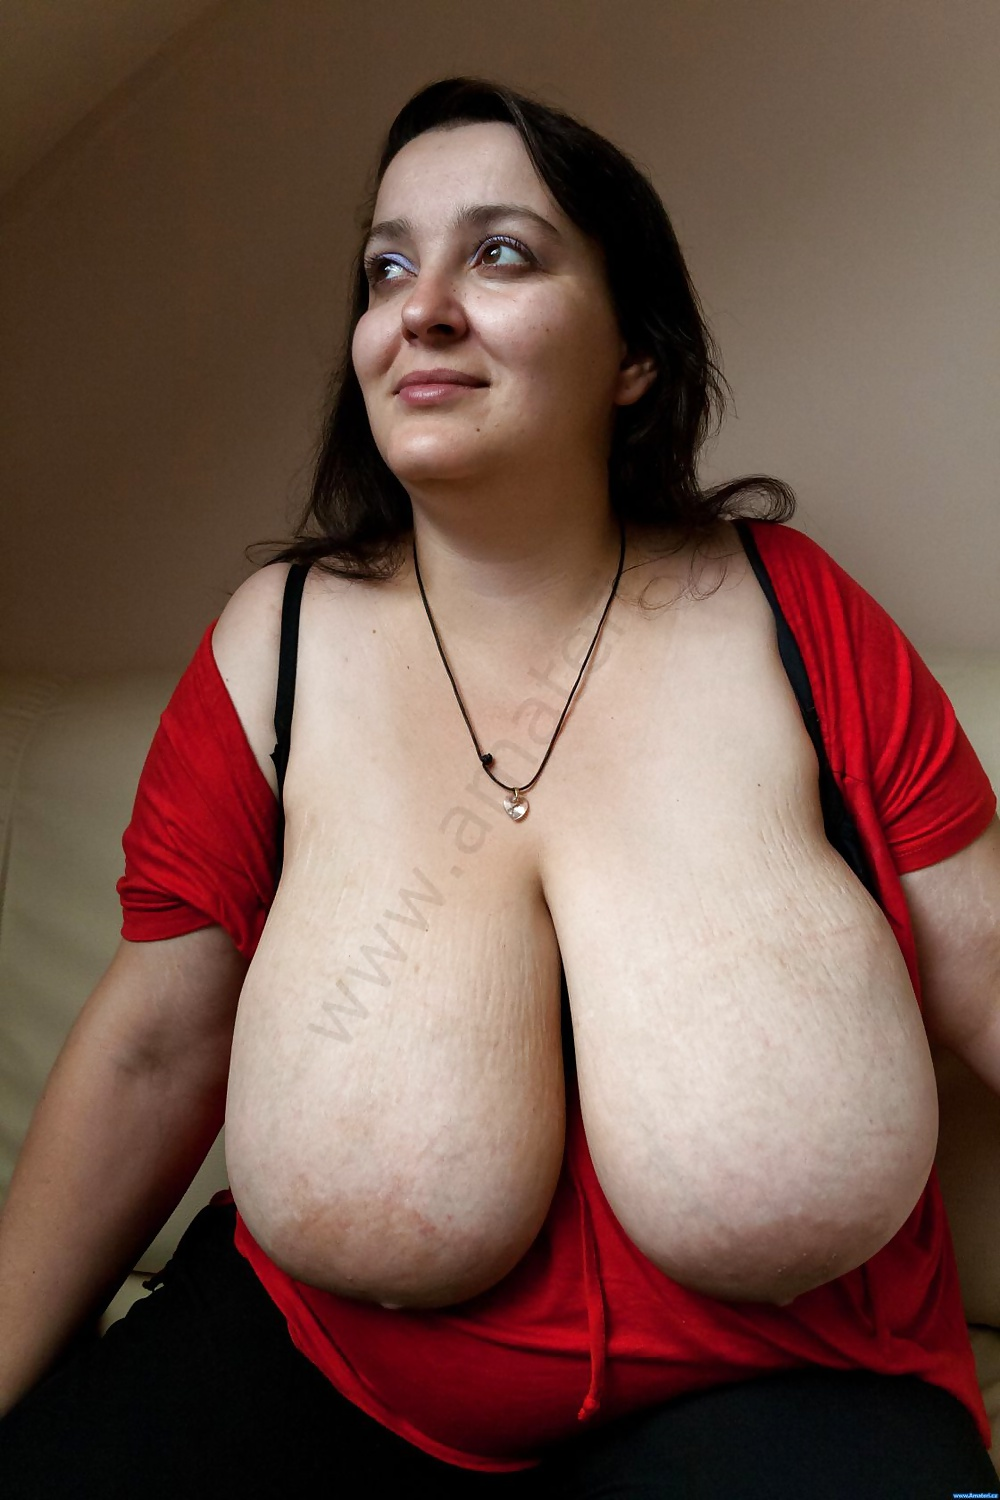 Ugly women with big titties — pic 6